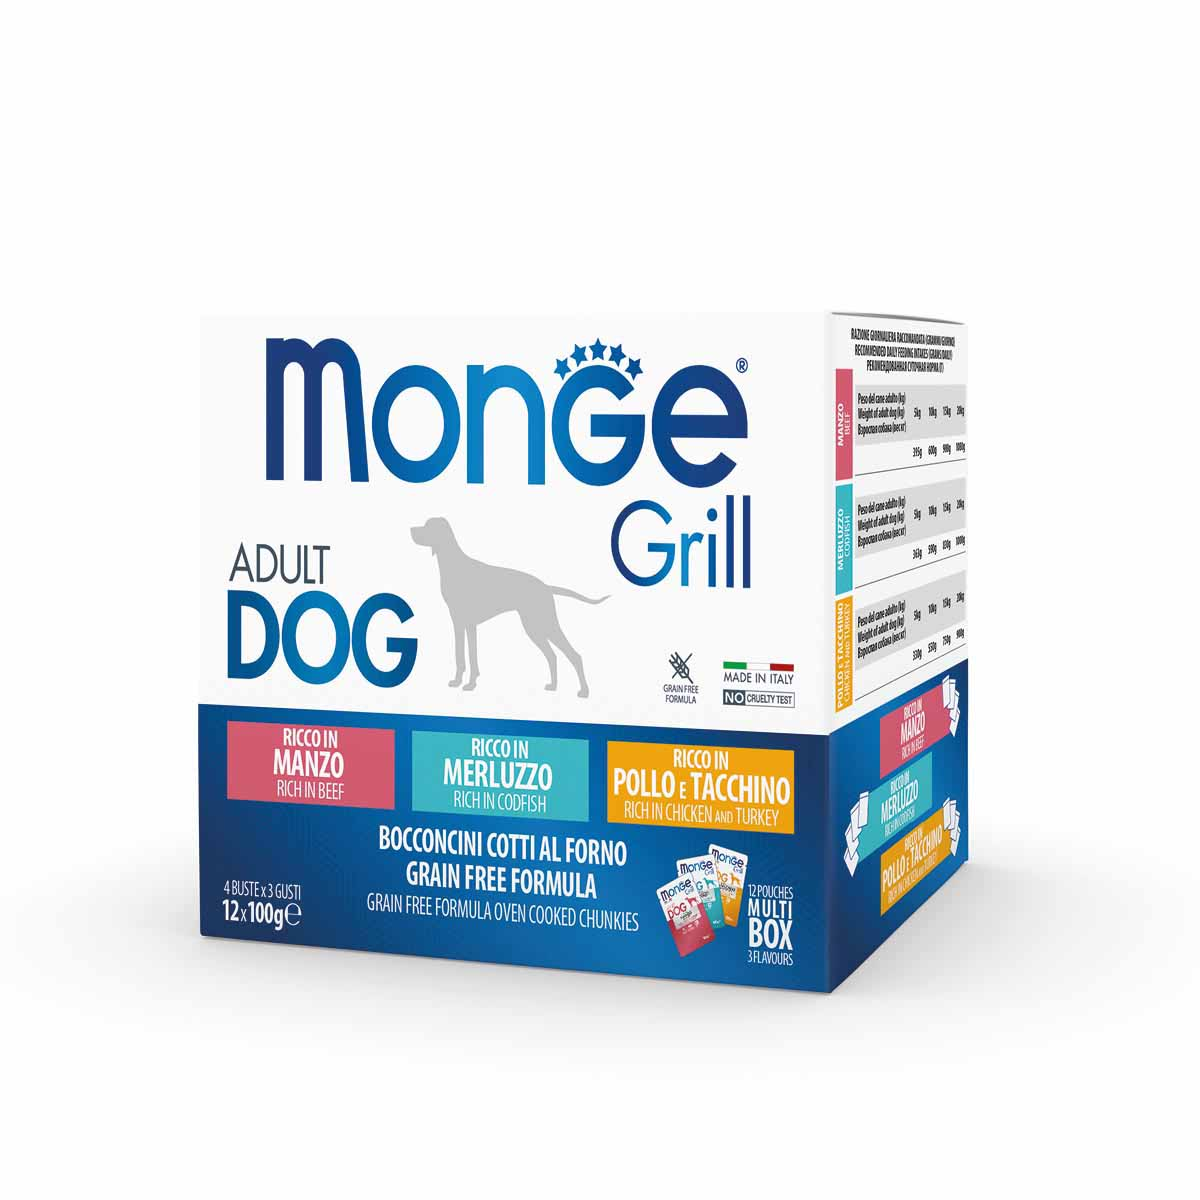 Monge Grill Cane Multipack